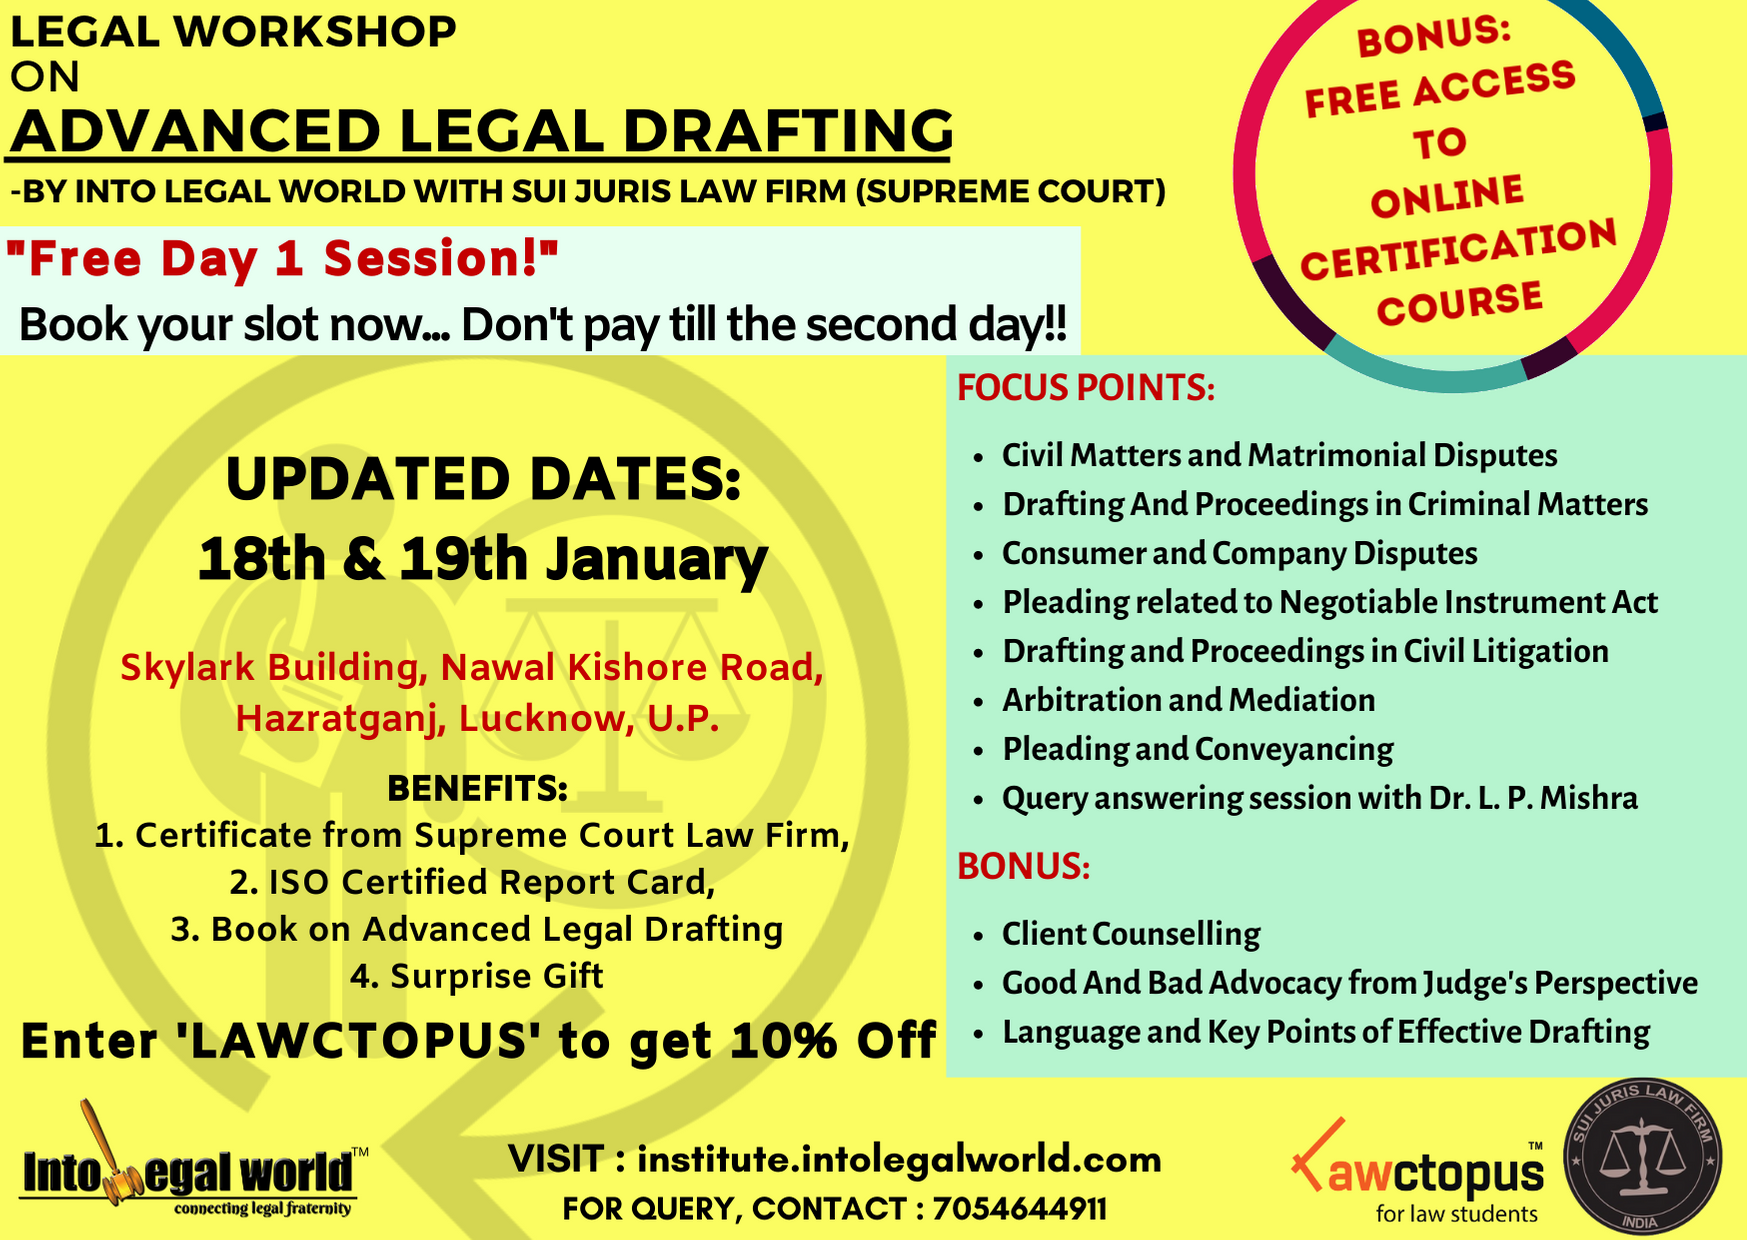 Workshop on Advance Legal Drafting by Into Legal World